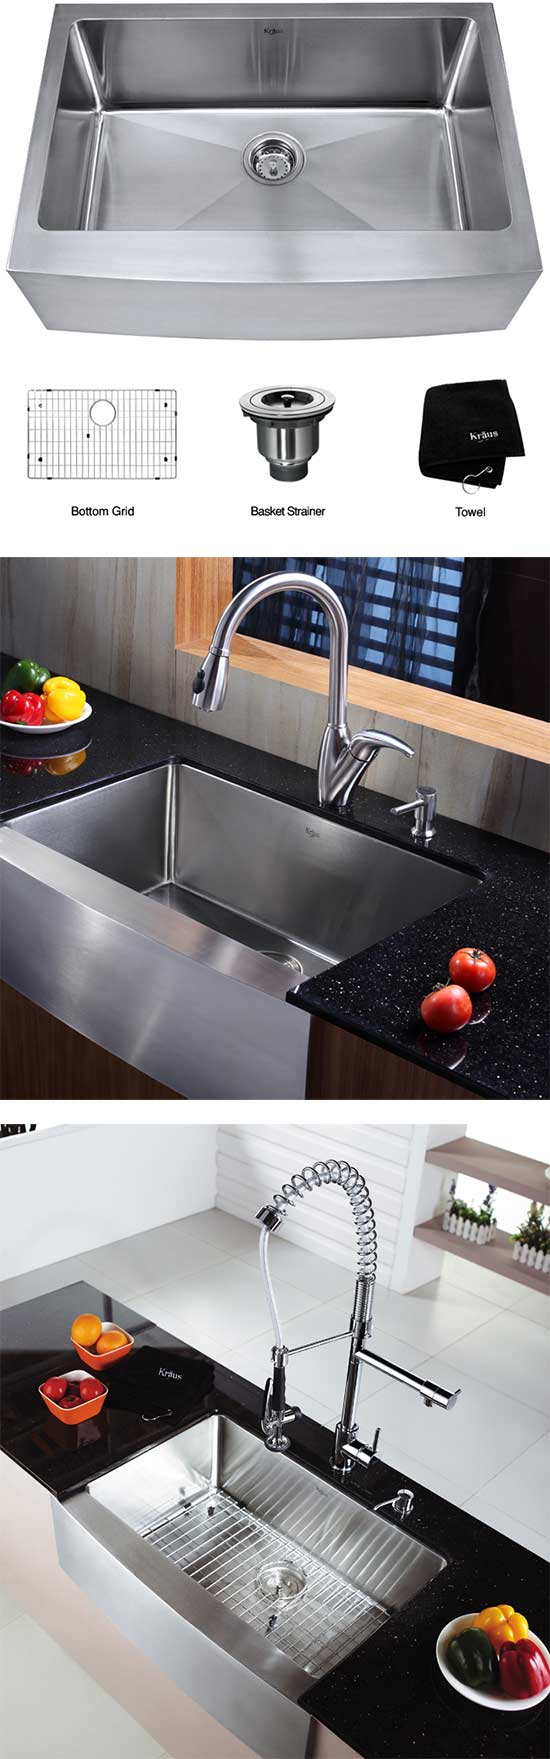 Belle Foret Farmhouse Sink Apron Front Farmhouse Kitchen Sinks From Kohler American